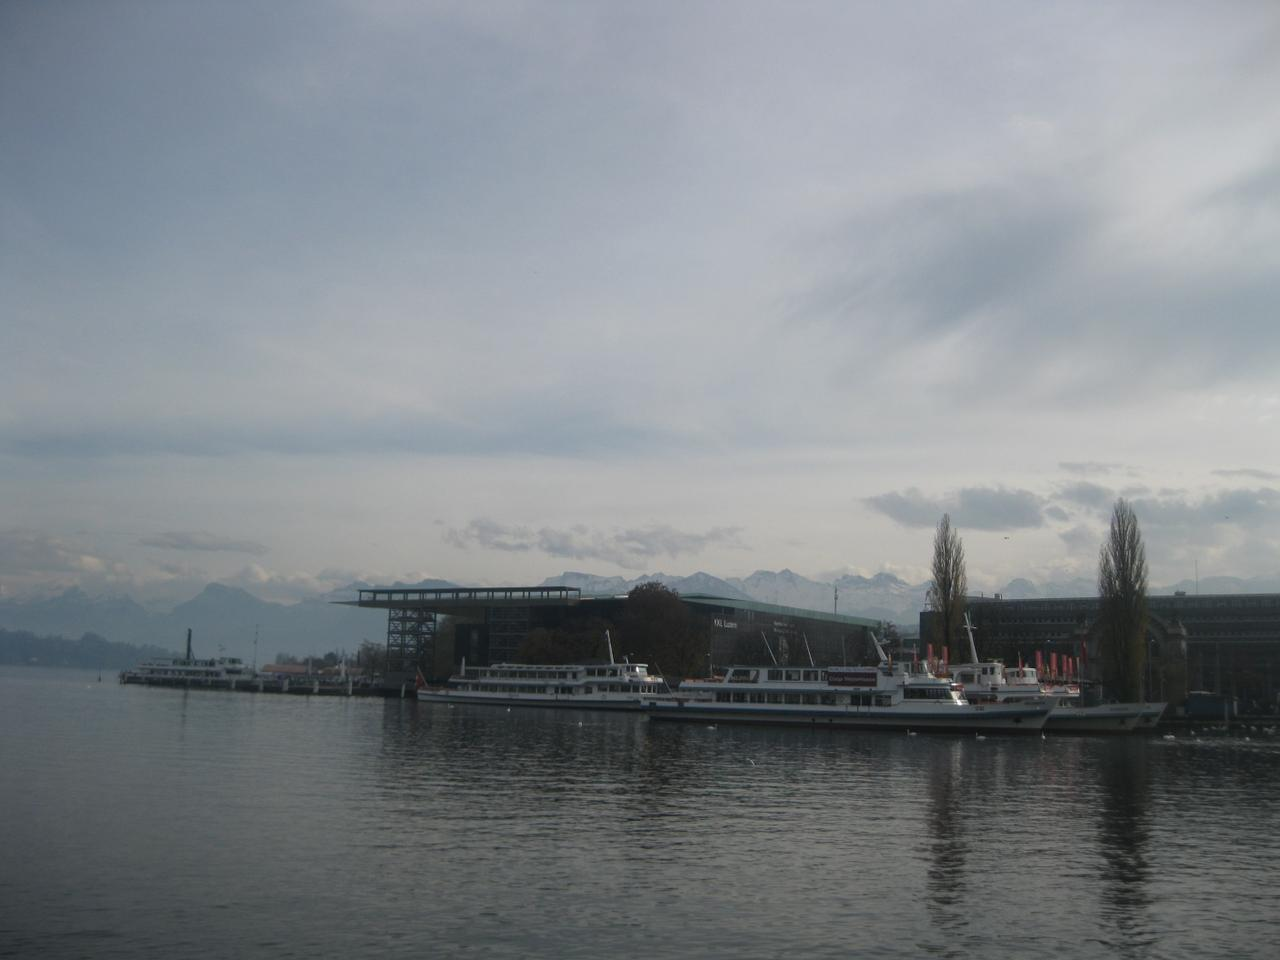 ../galleries/Luzern/IMG_5407.JPG